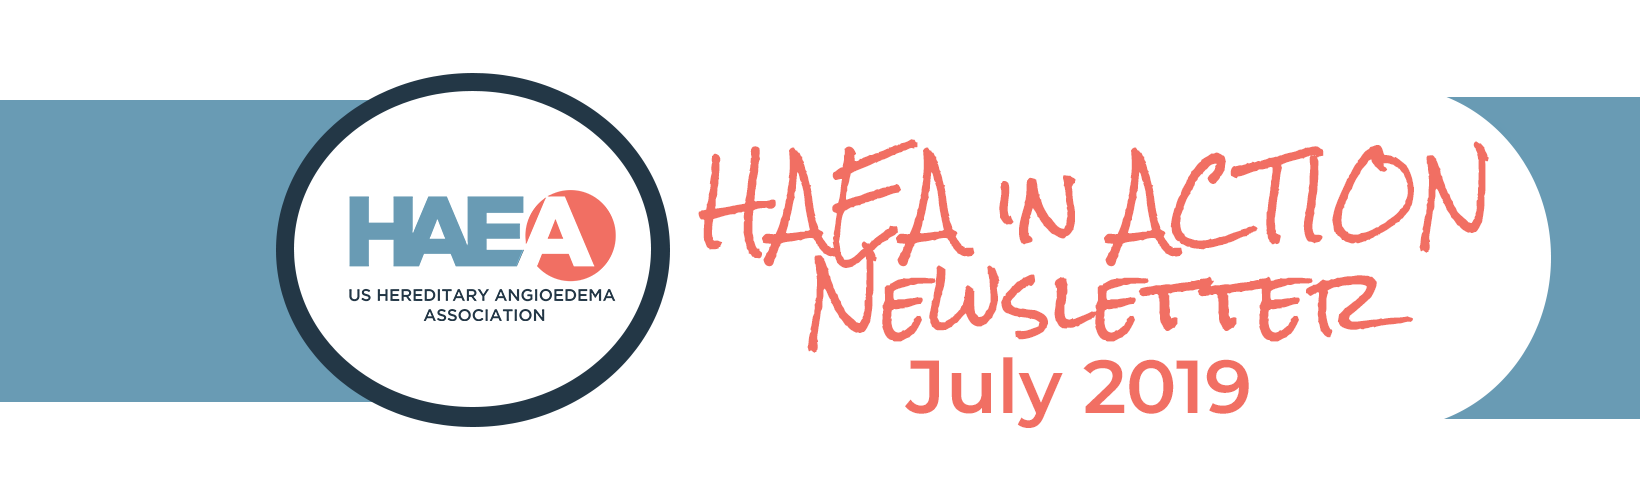 HAEA in Action July 2019 Newsletter